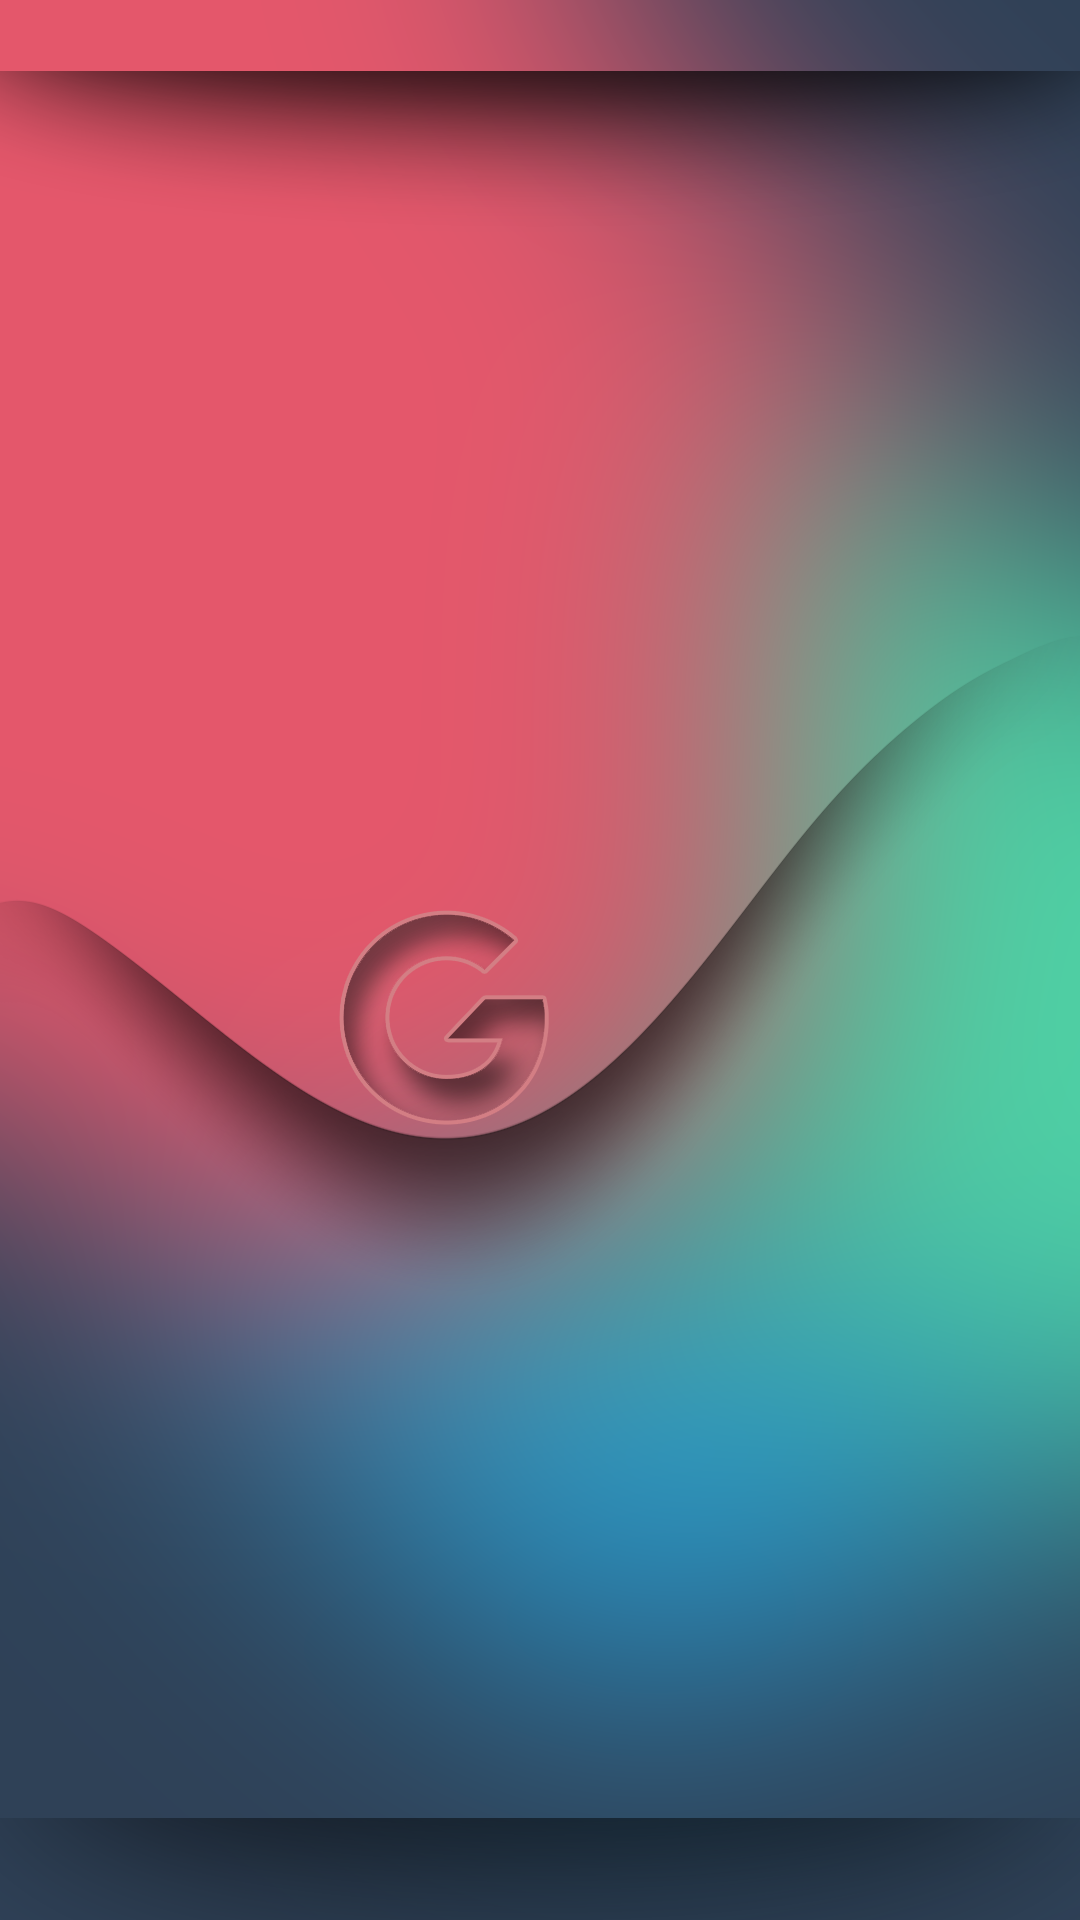 More Old G Iphone Wallpaper Blur Android Wallpaper Red Cool Wallpapers For Phones